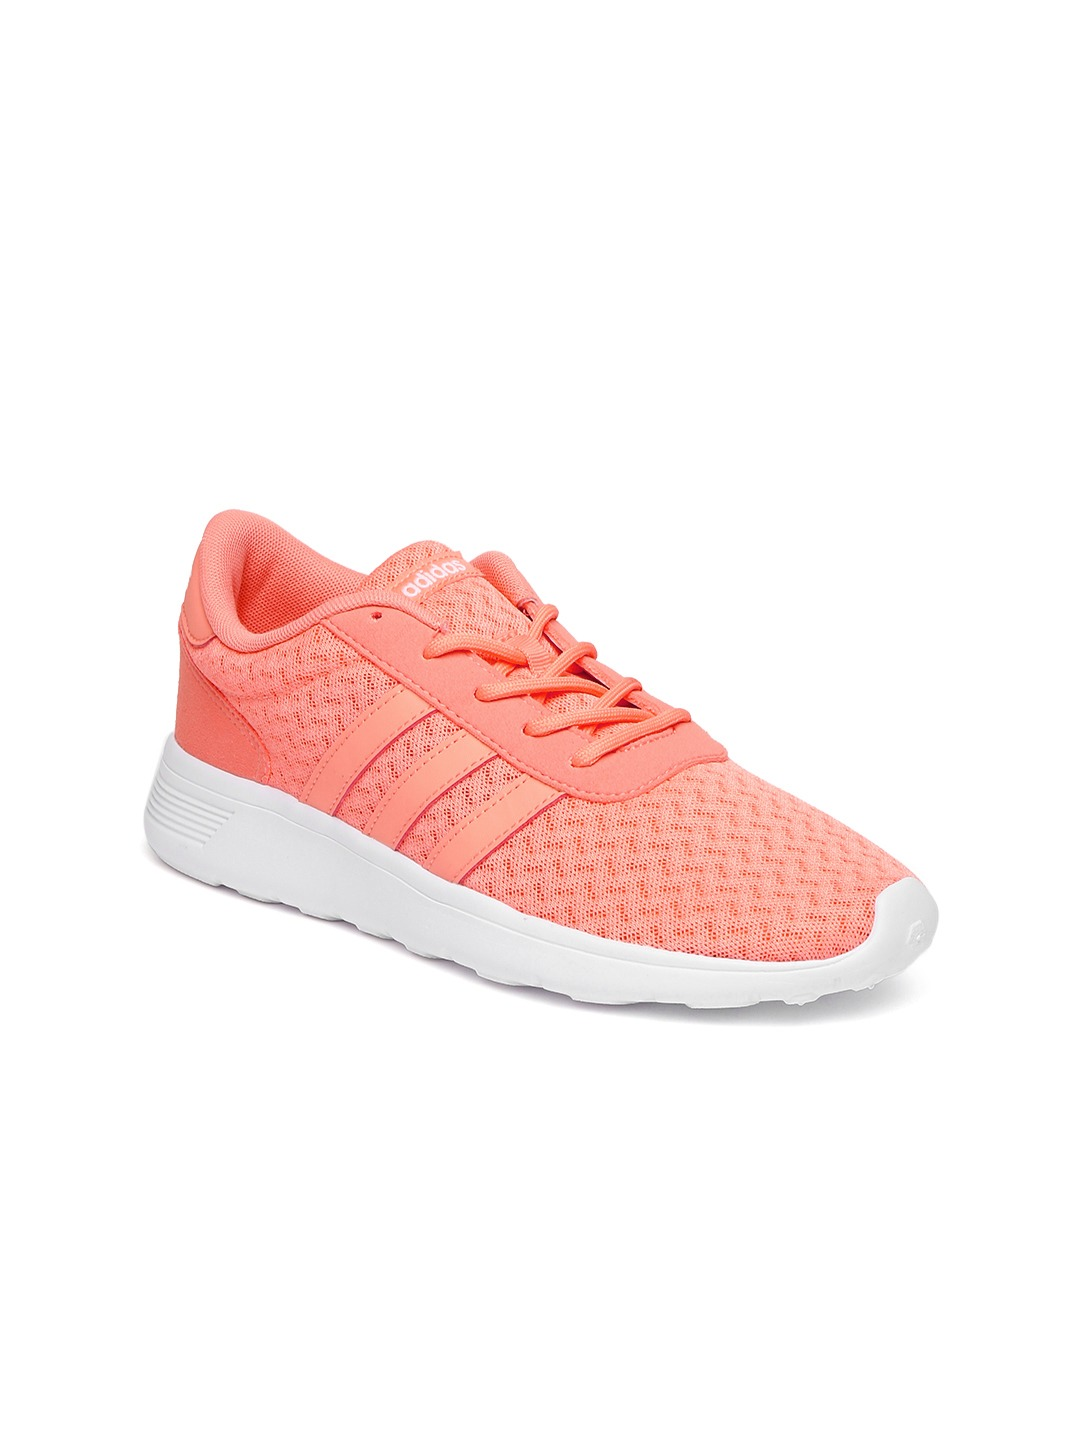 Adidas Neo Mesh Shoes